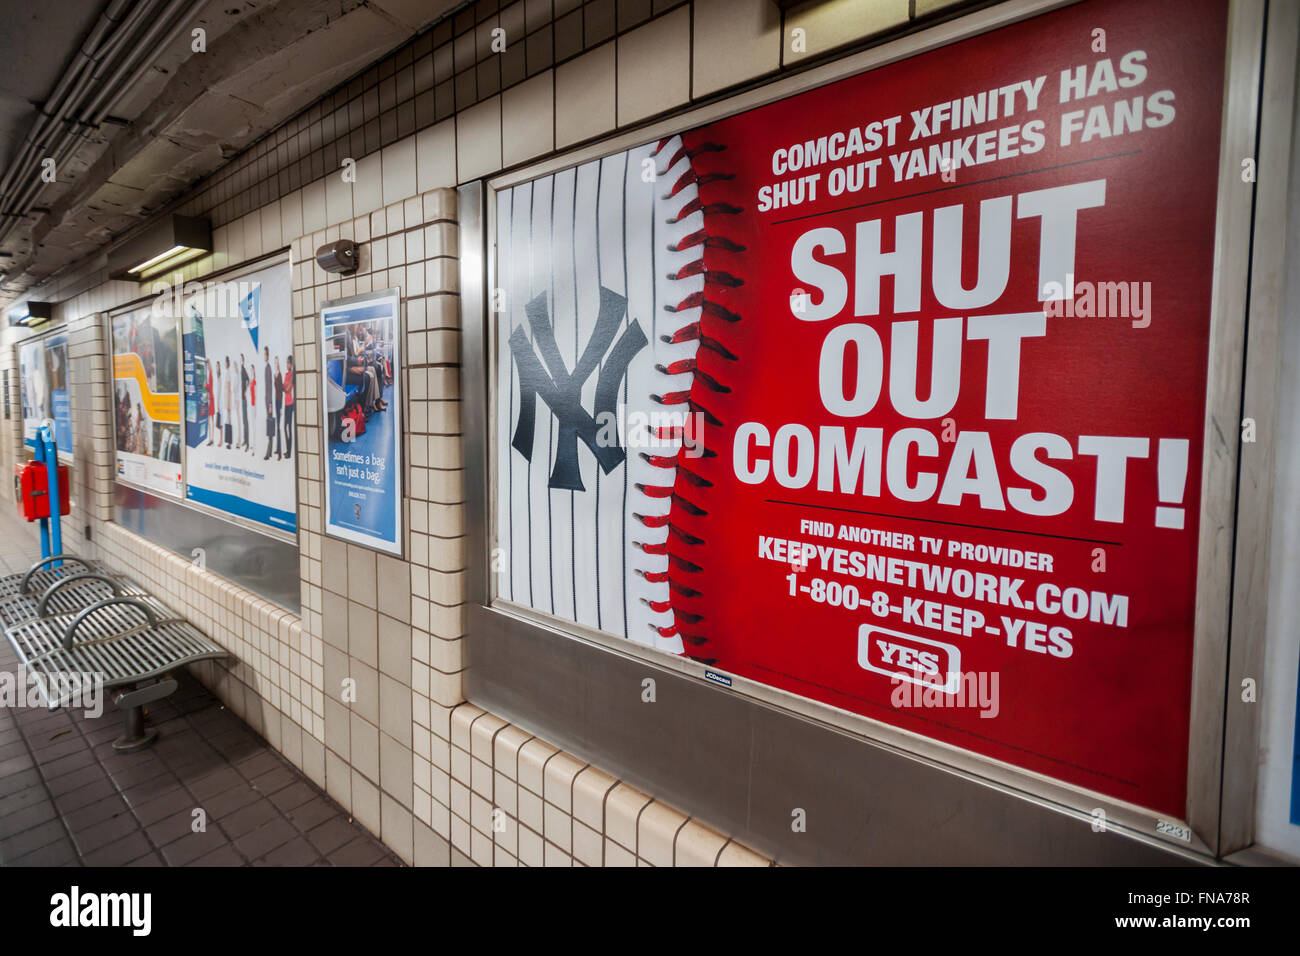 an advertisement by the yes network in a path station in new york on